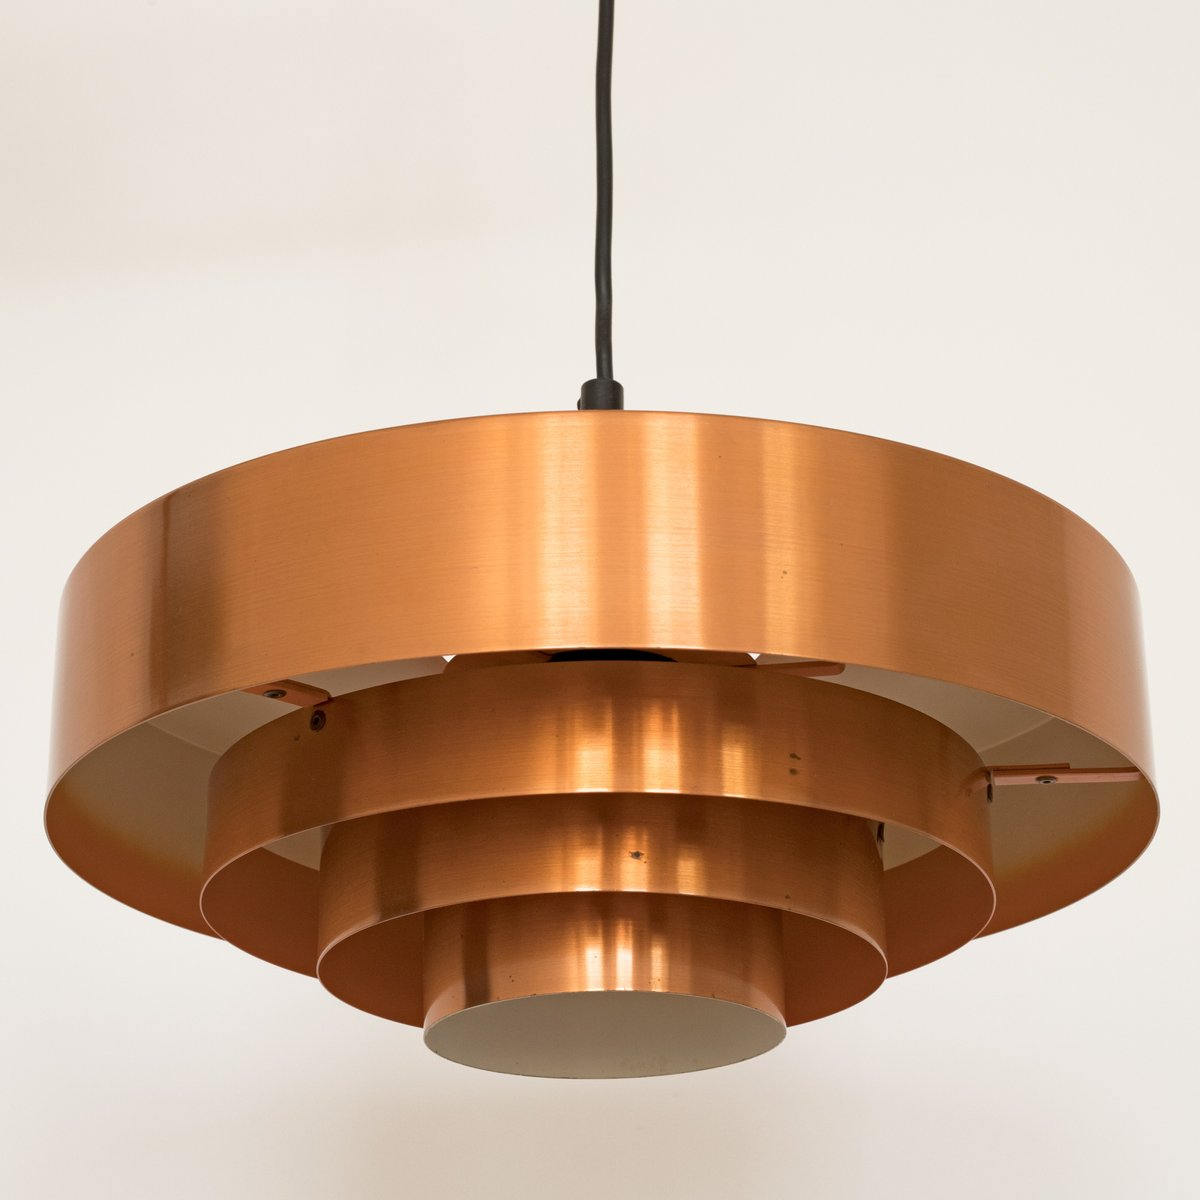 A Graphic Light Box And A Mid Century Dresser Turning The: Roulet Spun Copper Pendant Light By Jo Hammerborg For Fog